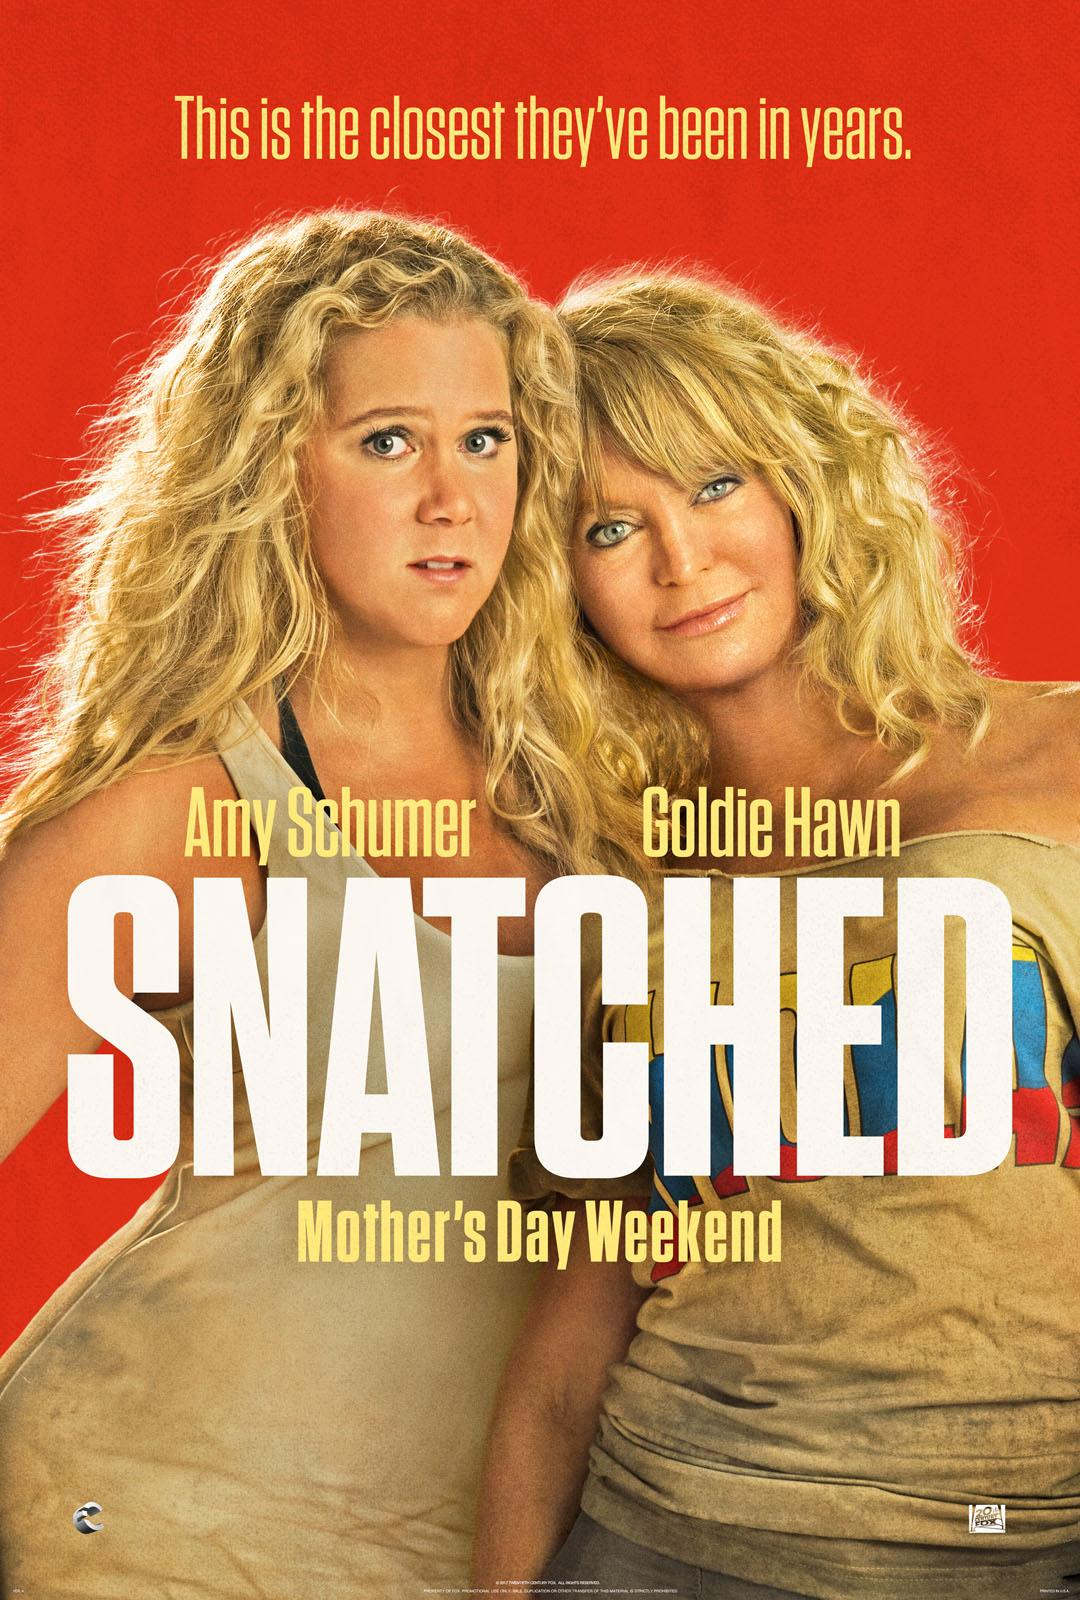 """Snatched""  (R) TM & © 2016 Twentieth Century Fox Film Corporation. All Rights Reserved. Not for sale or duplication."